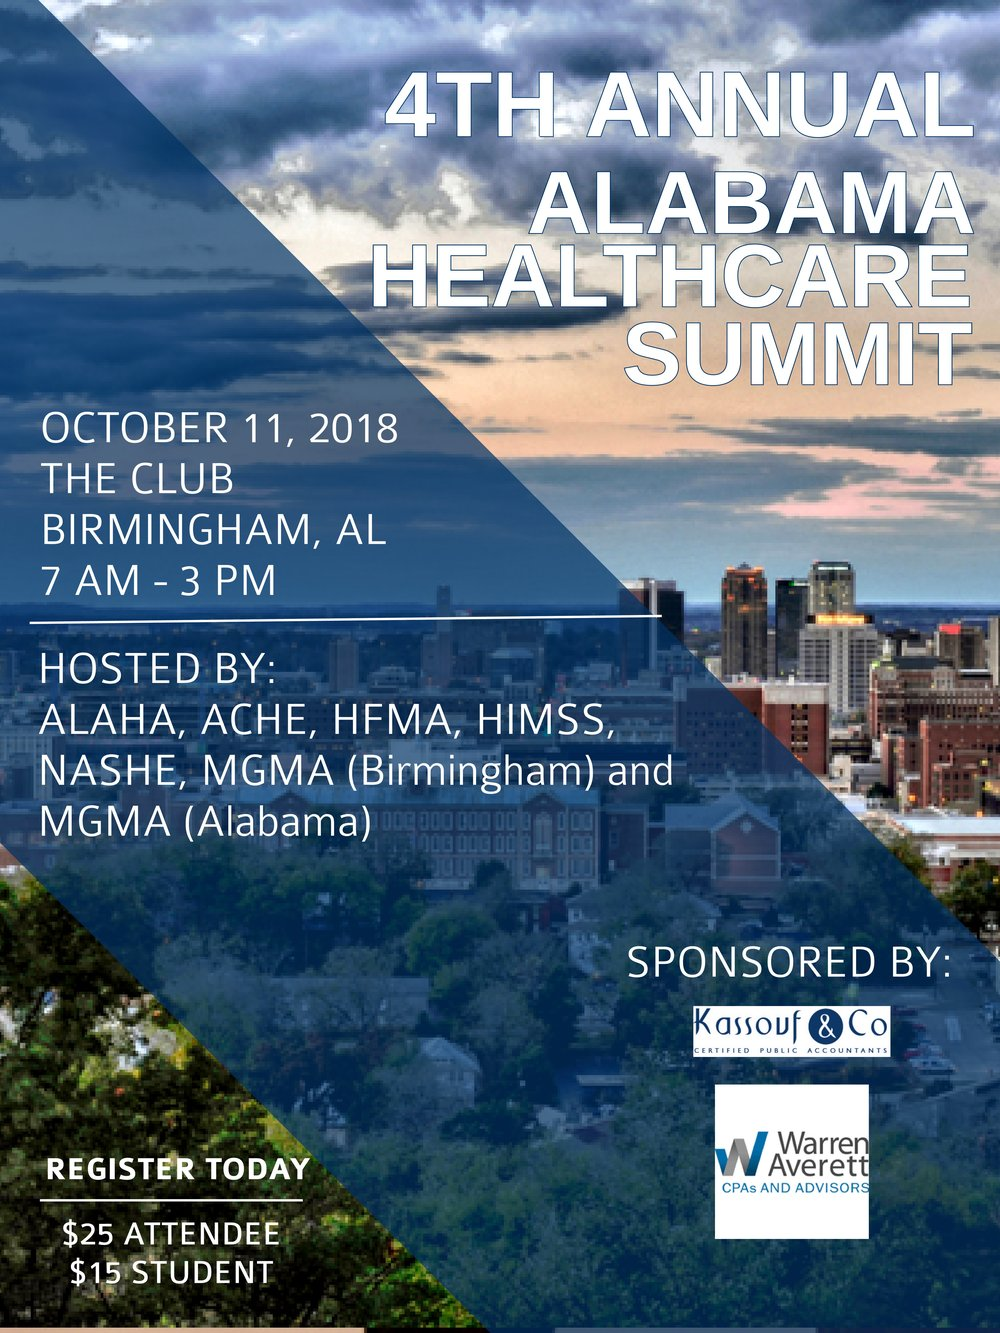 4th Annual Alabama Healthcare Summit Flyer.jpeg